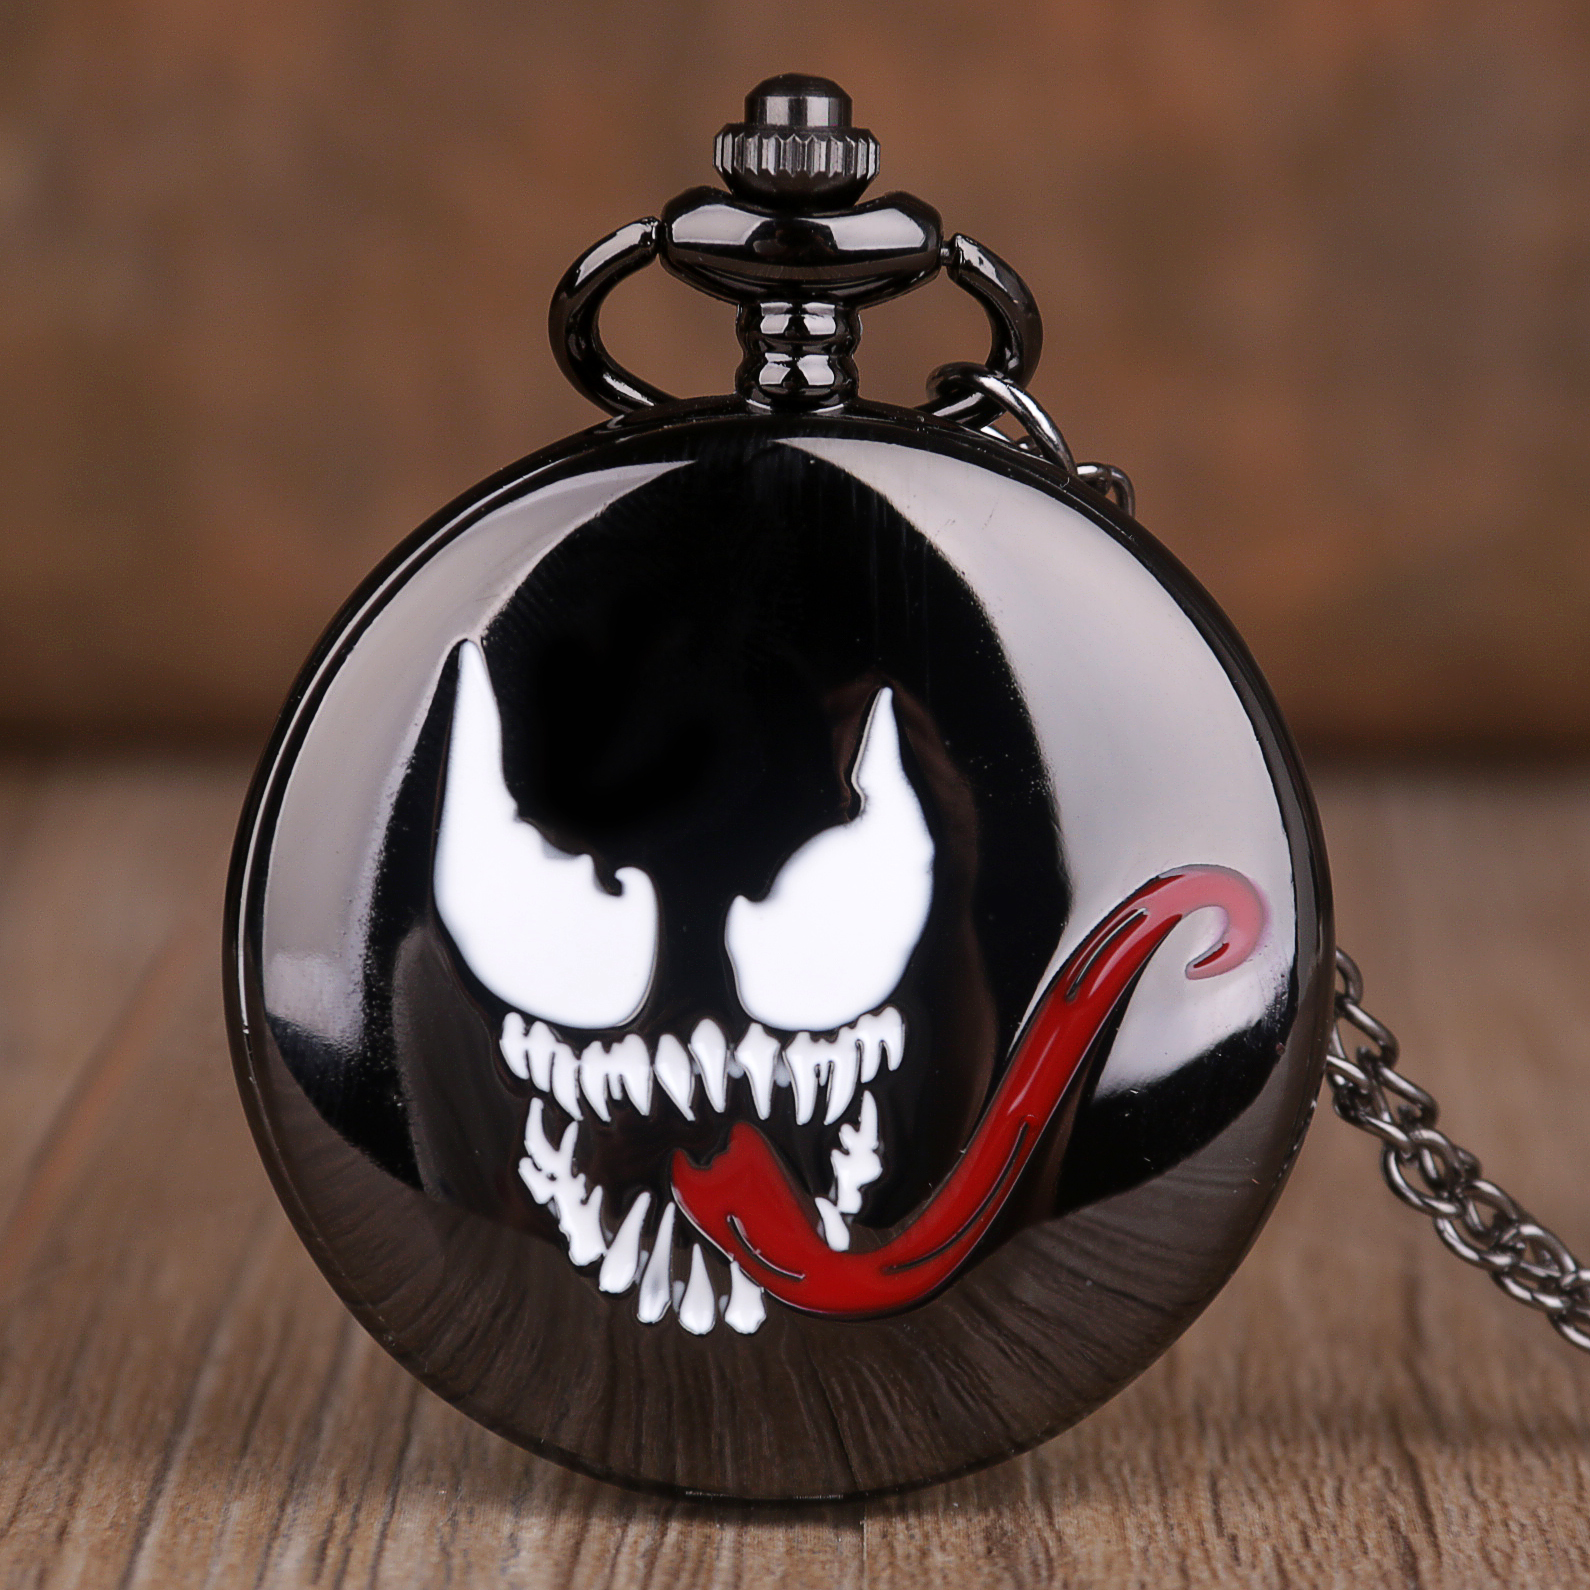 Evil Spirit Long Tongue Design Pendant Pocket Watch Black Steampunk Necklace Quartz Pocket Watches Souvenir Gifts For Men Women